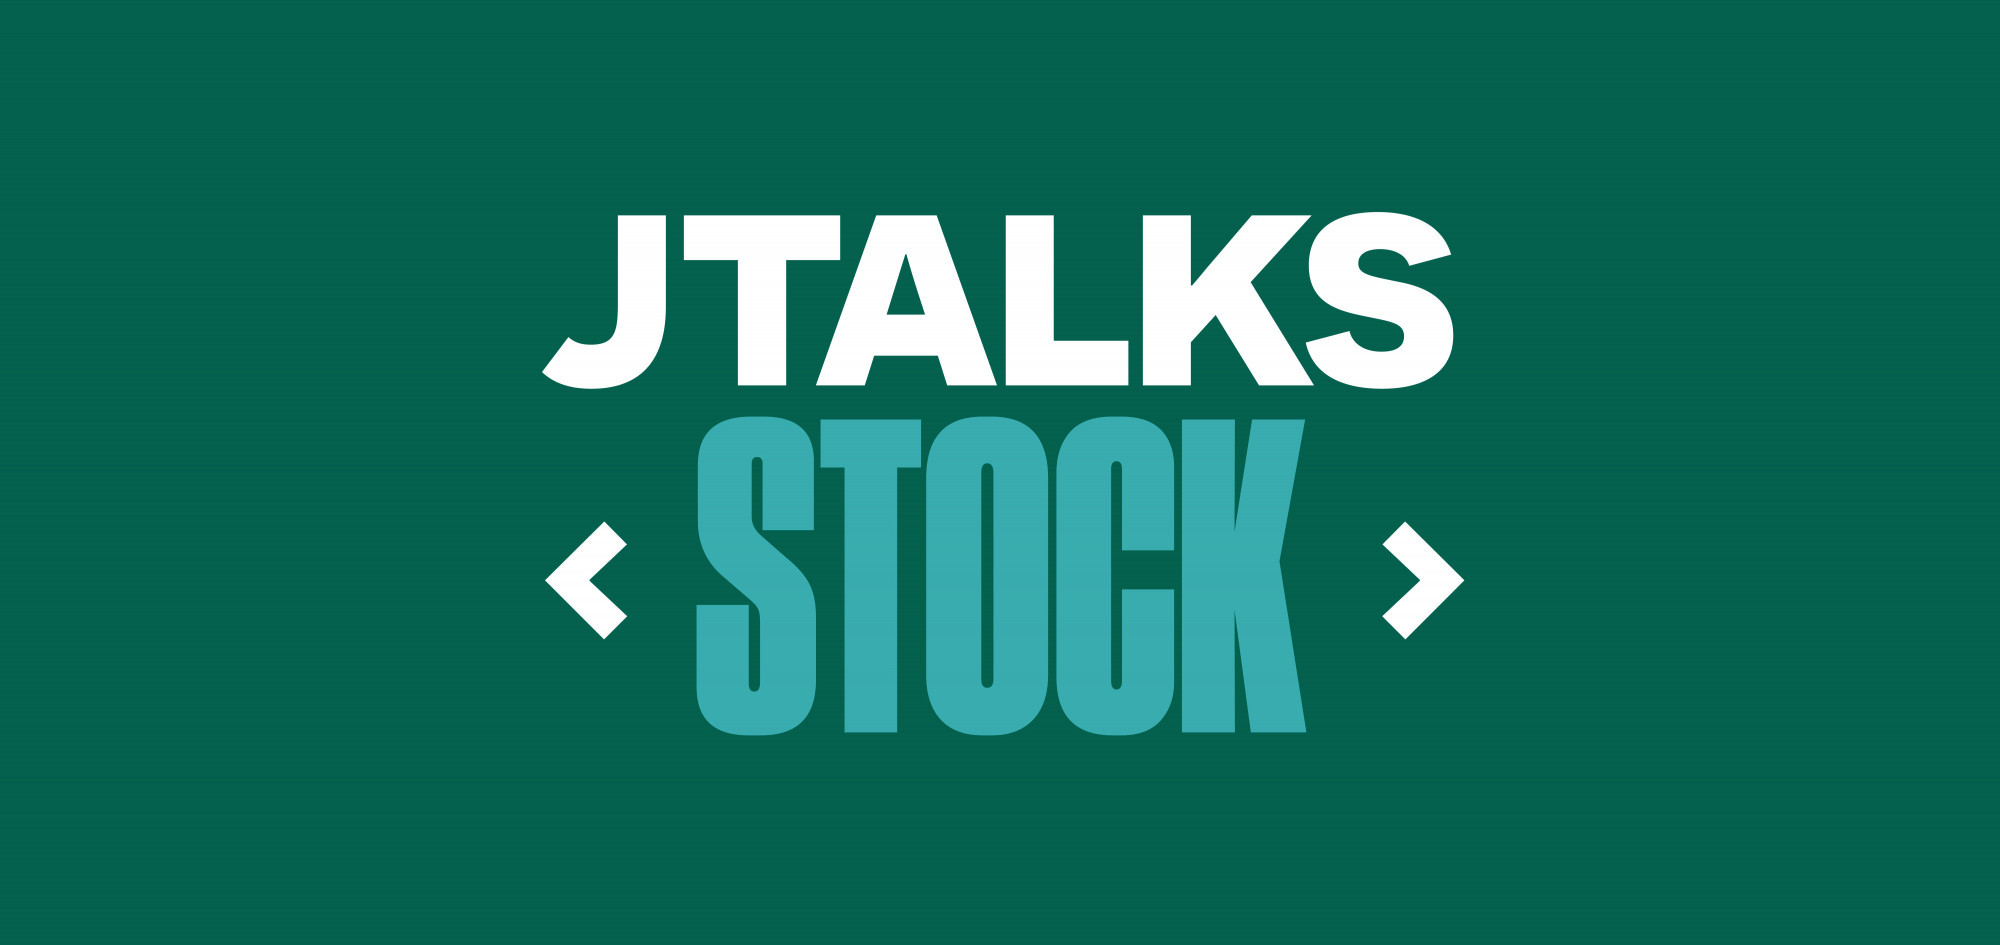 [ONLINE] Jouska Talks Stock: The Guide to Becoming a Confident Investor - Batch 2